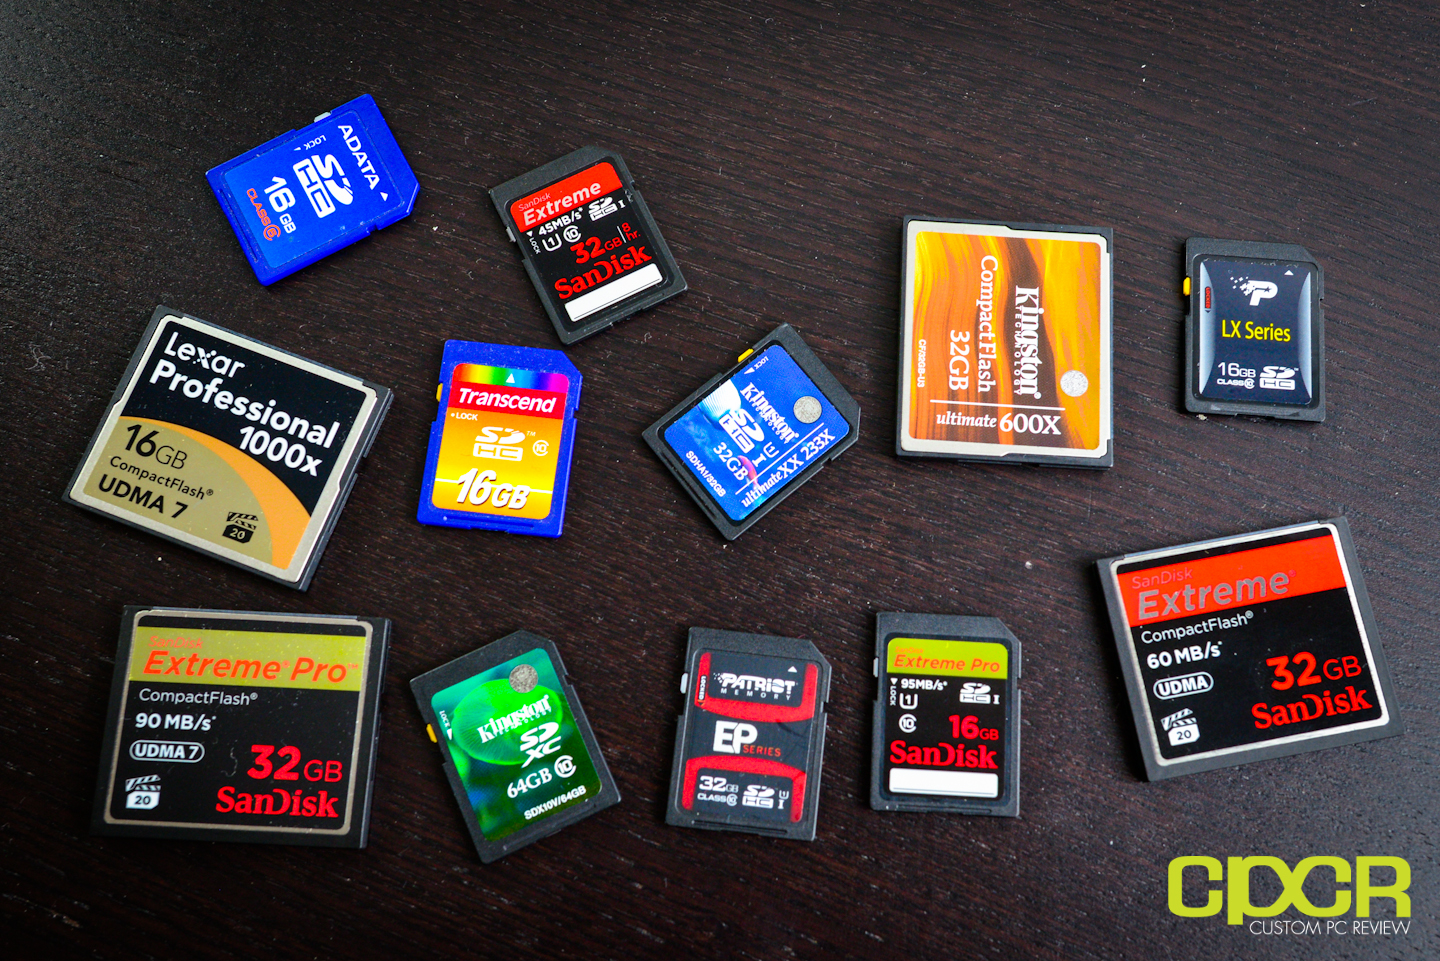 best memory card roundup 13 memory cards tested custom pc review. Black Bedroom Furniture Sets. Home Design Ideas